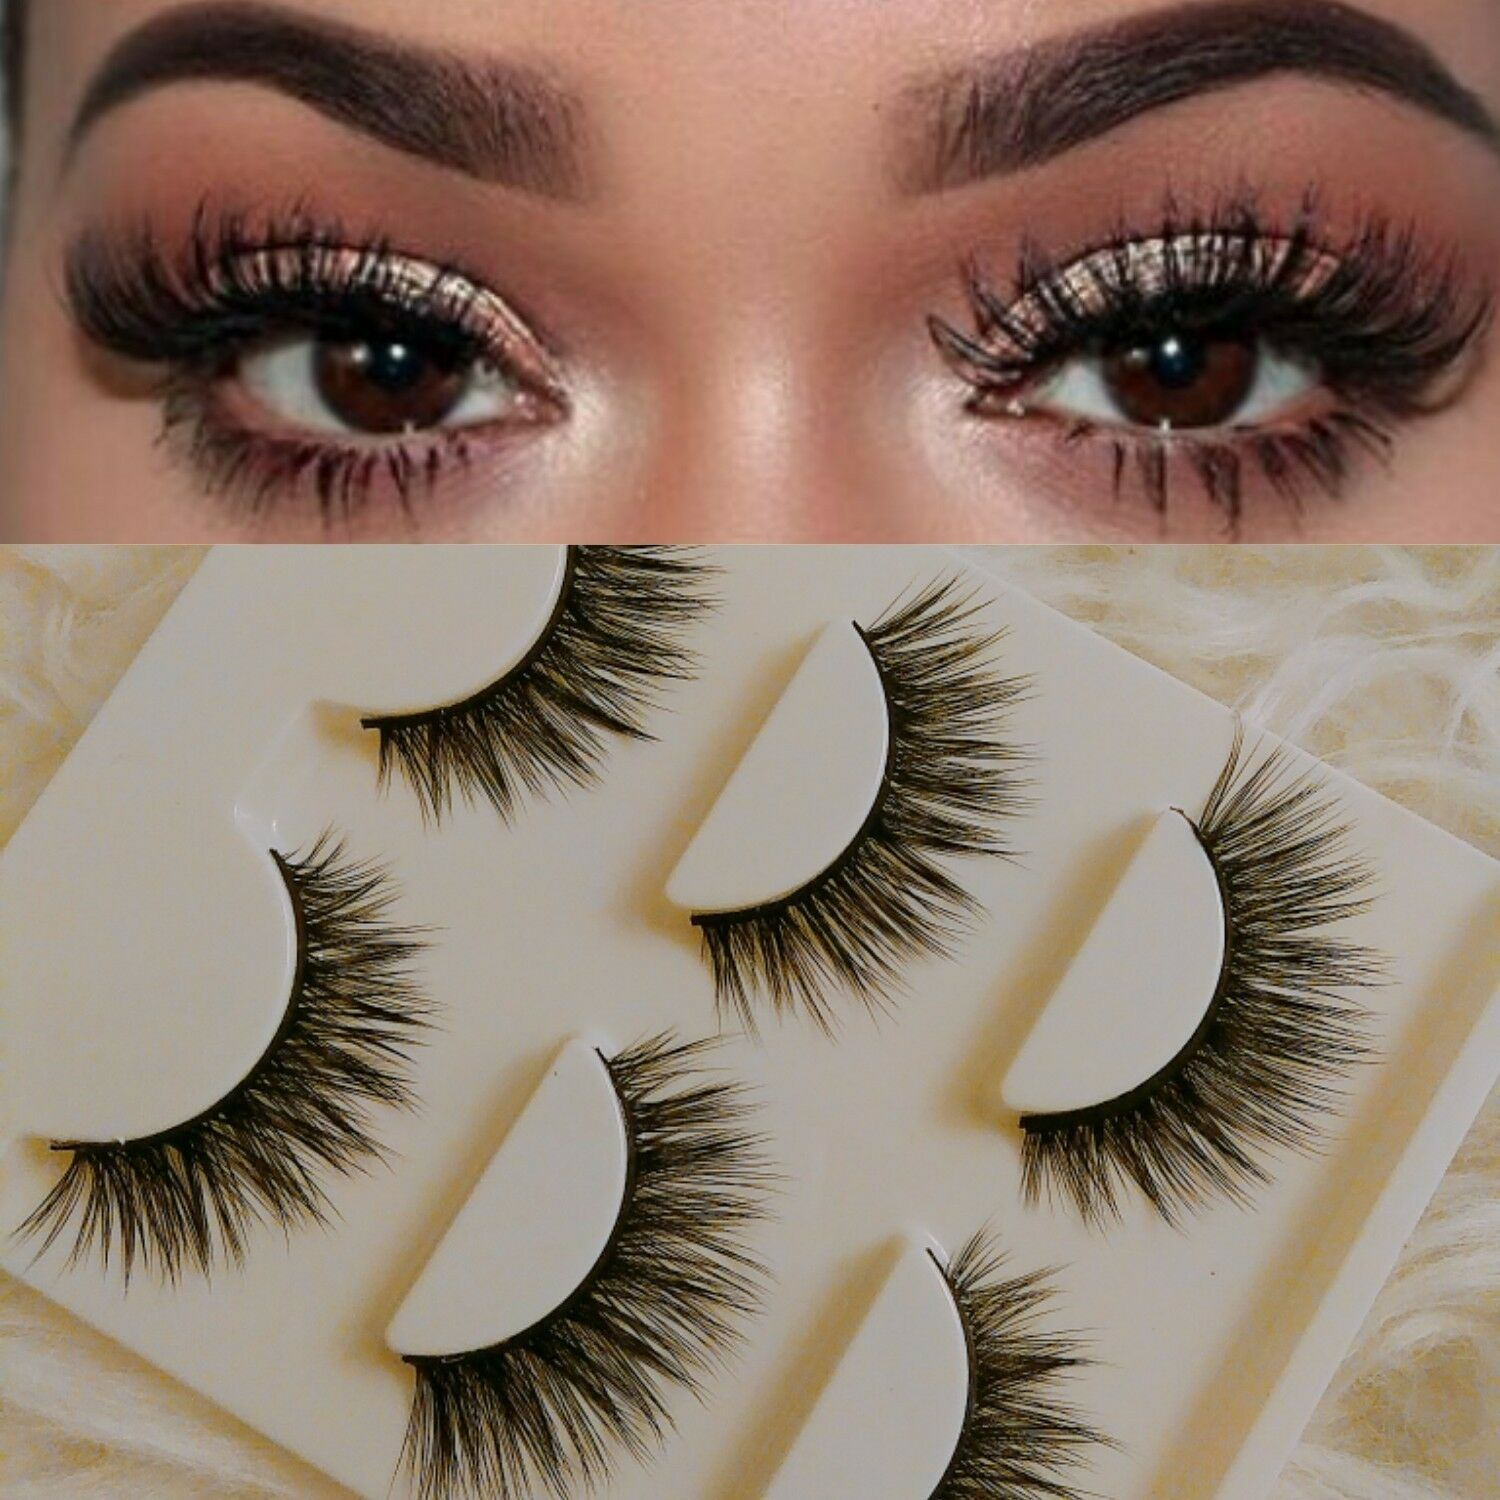 Fake Lashes Vs Mascara Vs Eyelash Extension Kiyosa Japanese Total